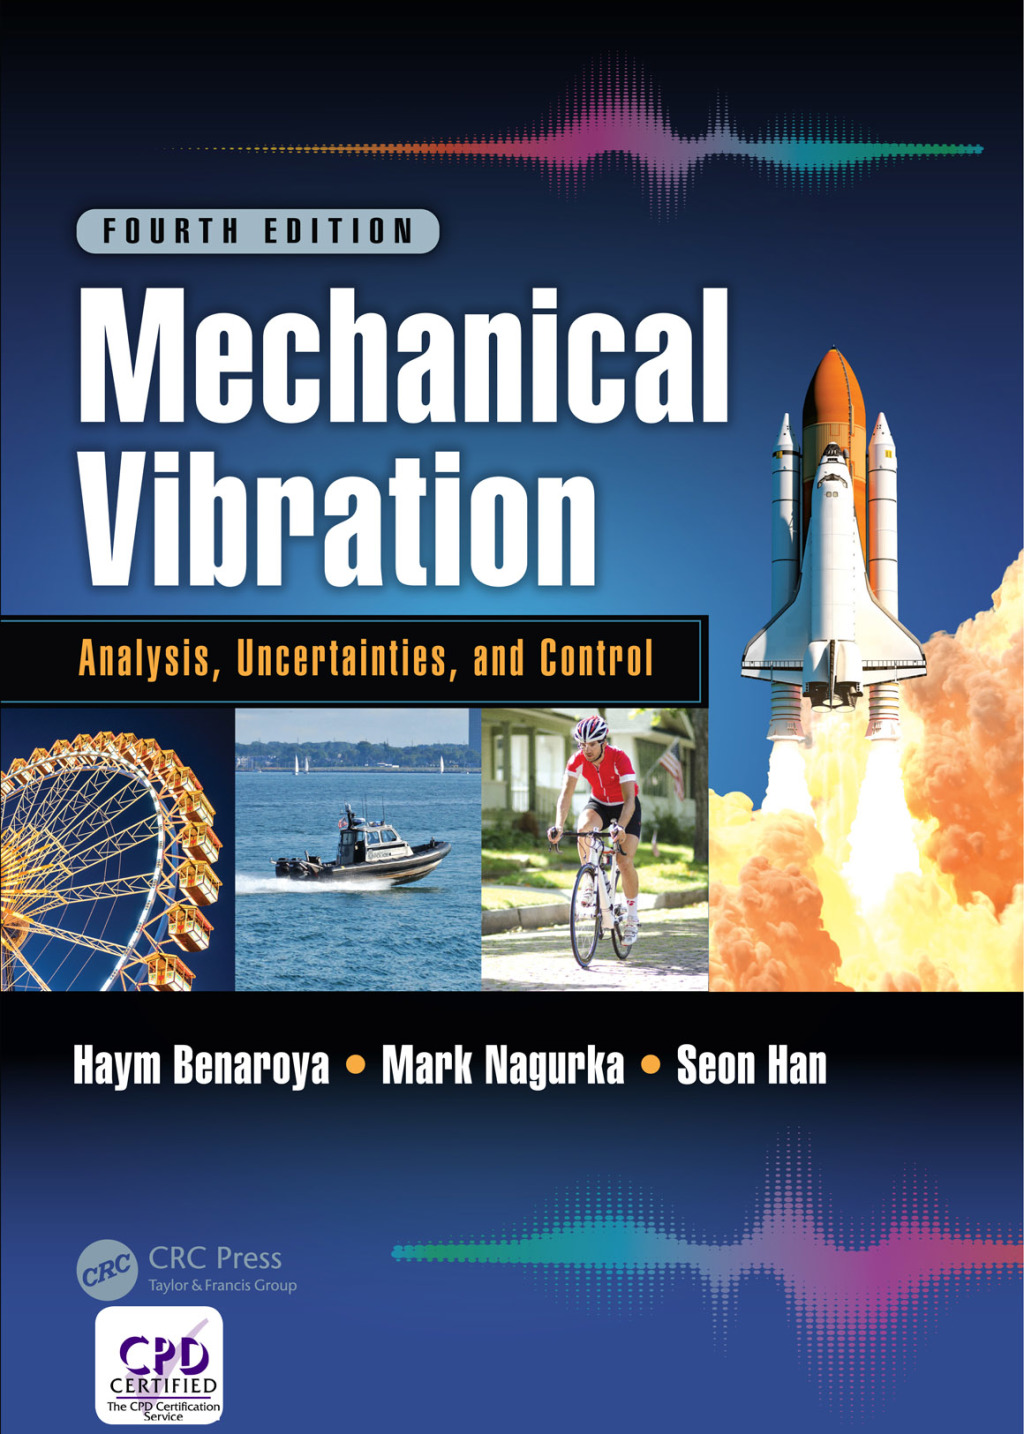 Mechanical Vibration (ebook) eBooks